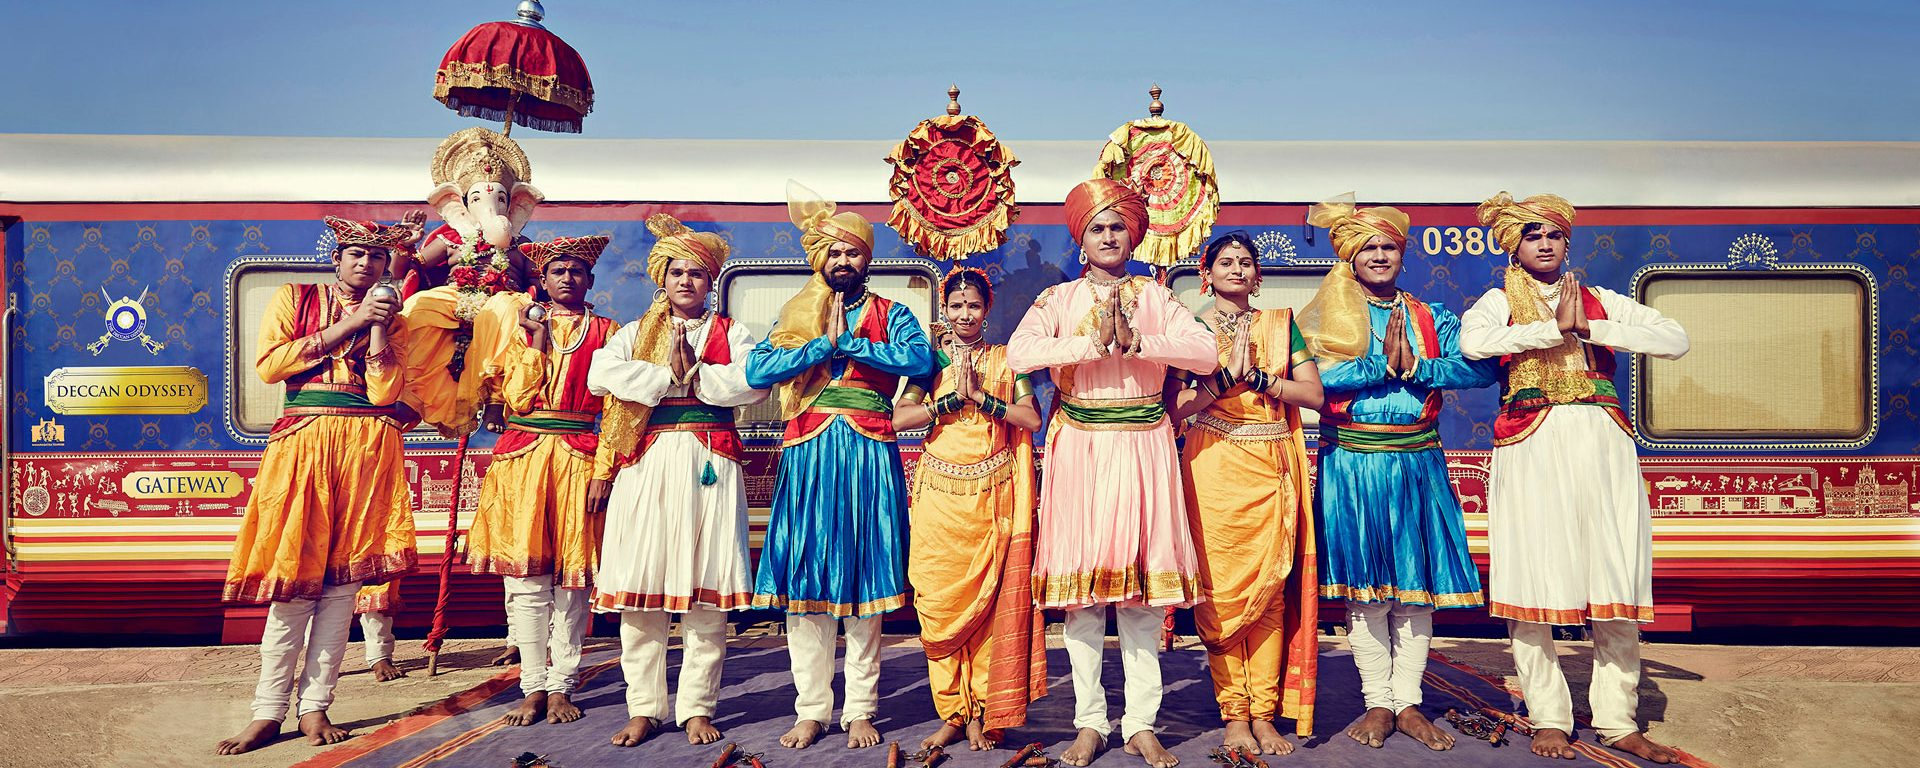 Southern India by luxury train on the Deccan Odyssey